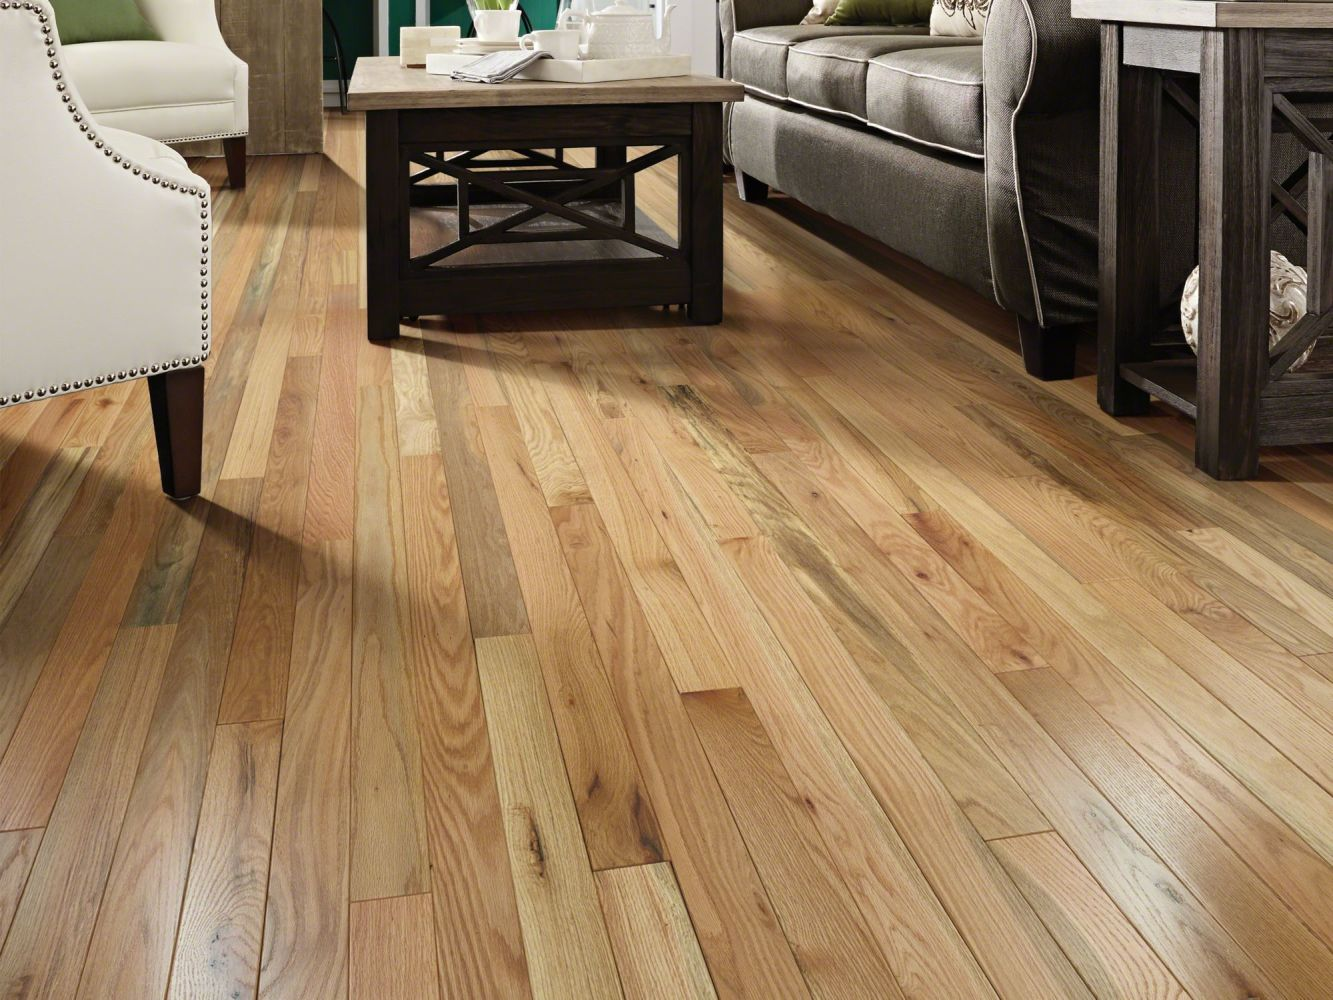 Shaw Floors Oak Solid Golden Opportunity 2 1/4″ 4s Rustic Natural 00143_SW442